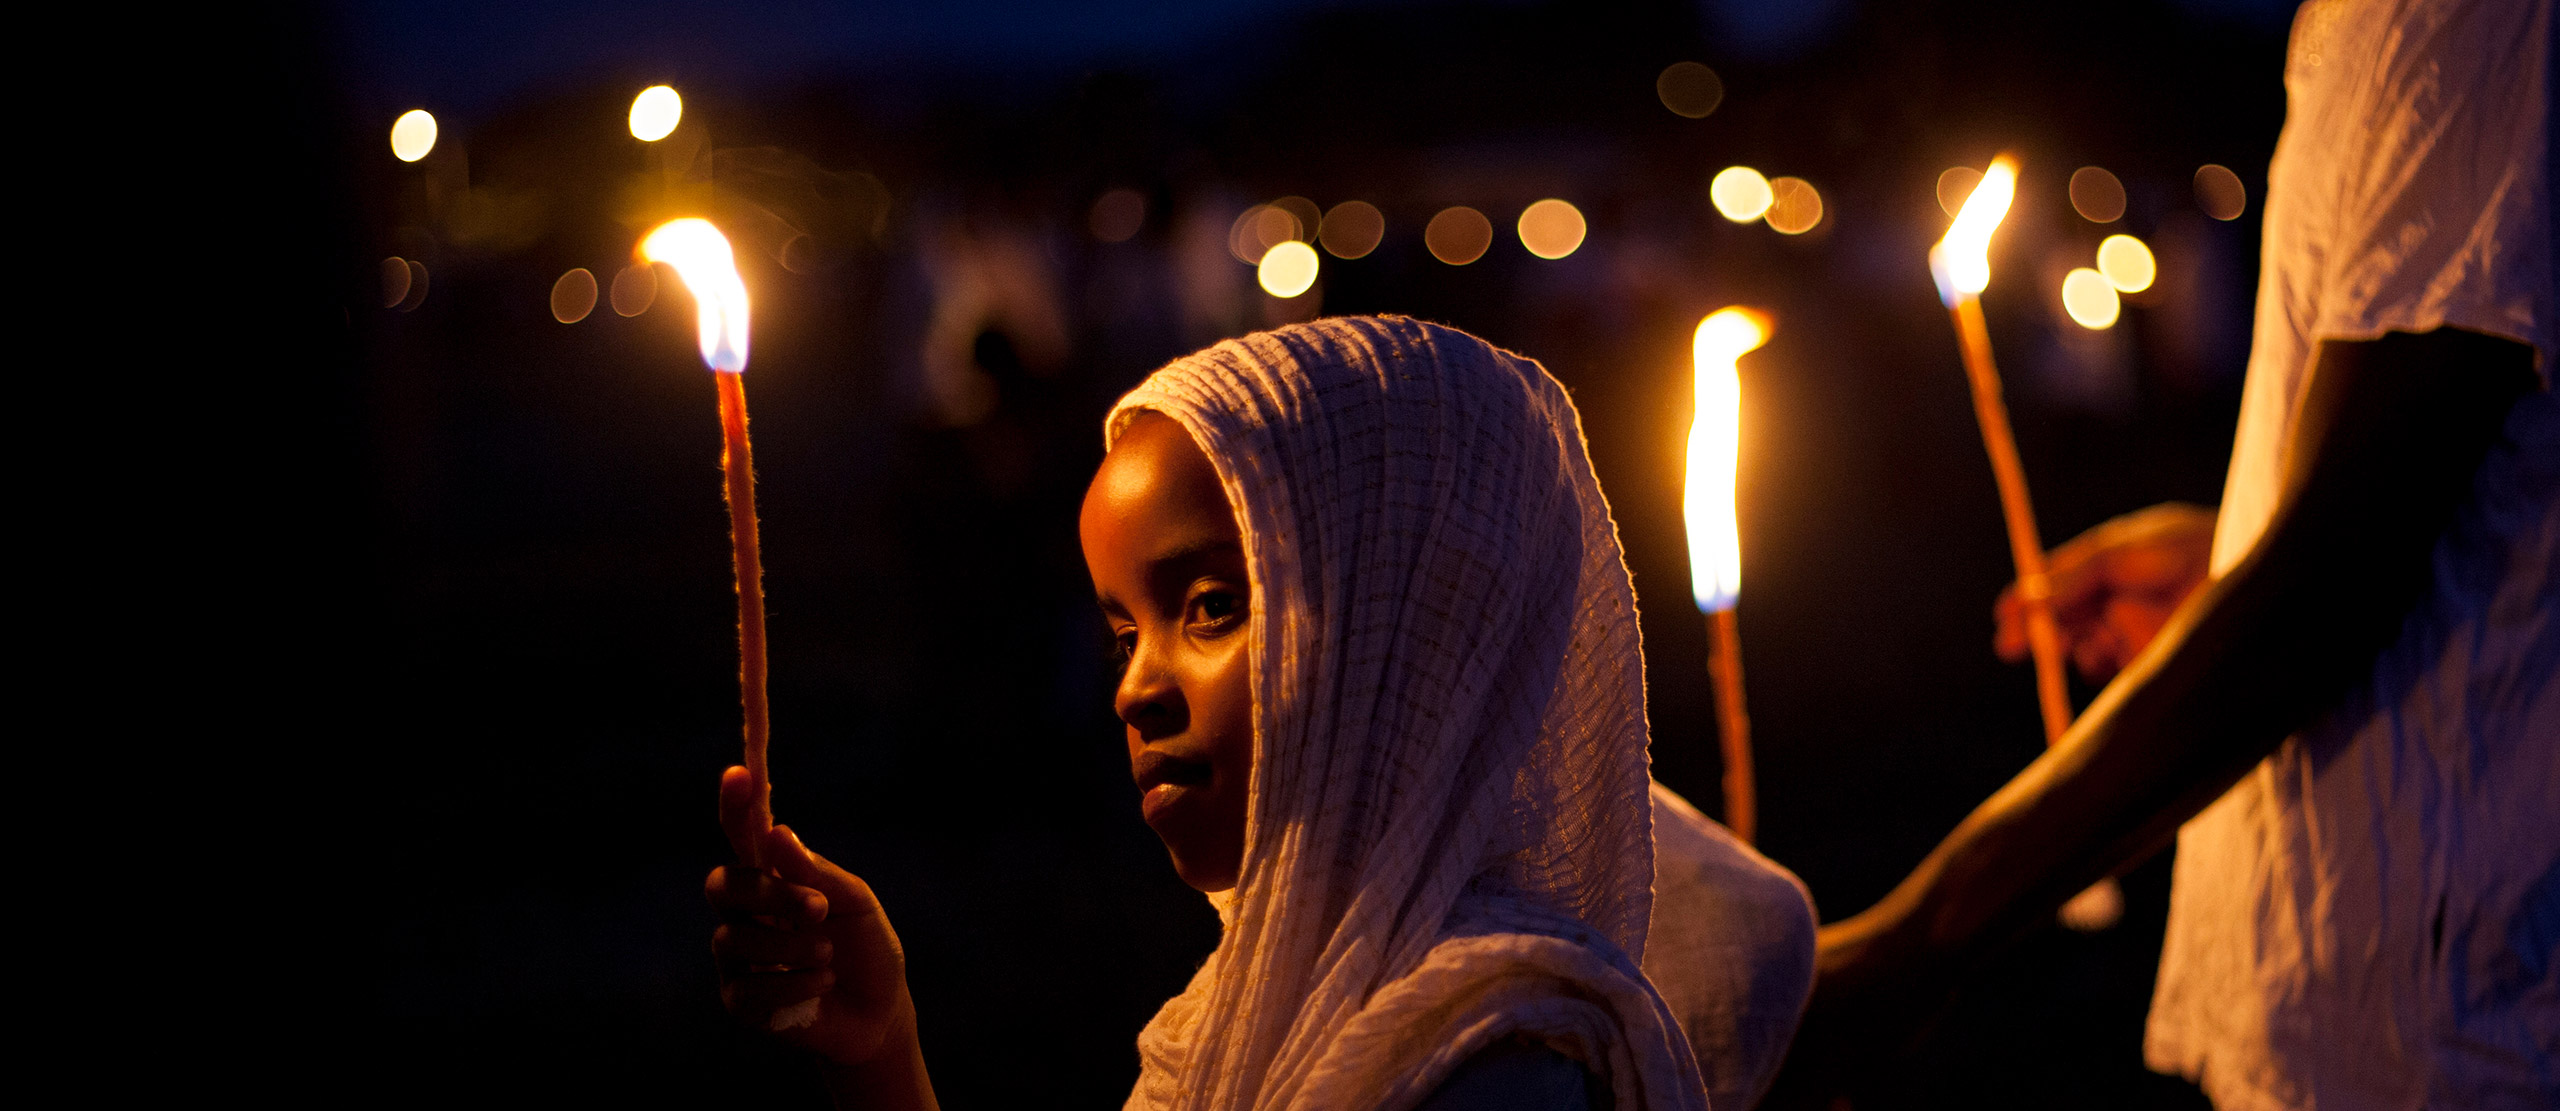 A young Ethiopian clothed in white carries a long lit candle during a silent evening religious ceremony.